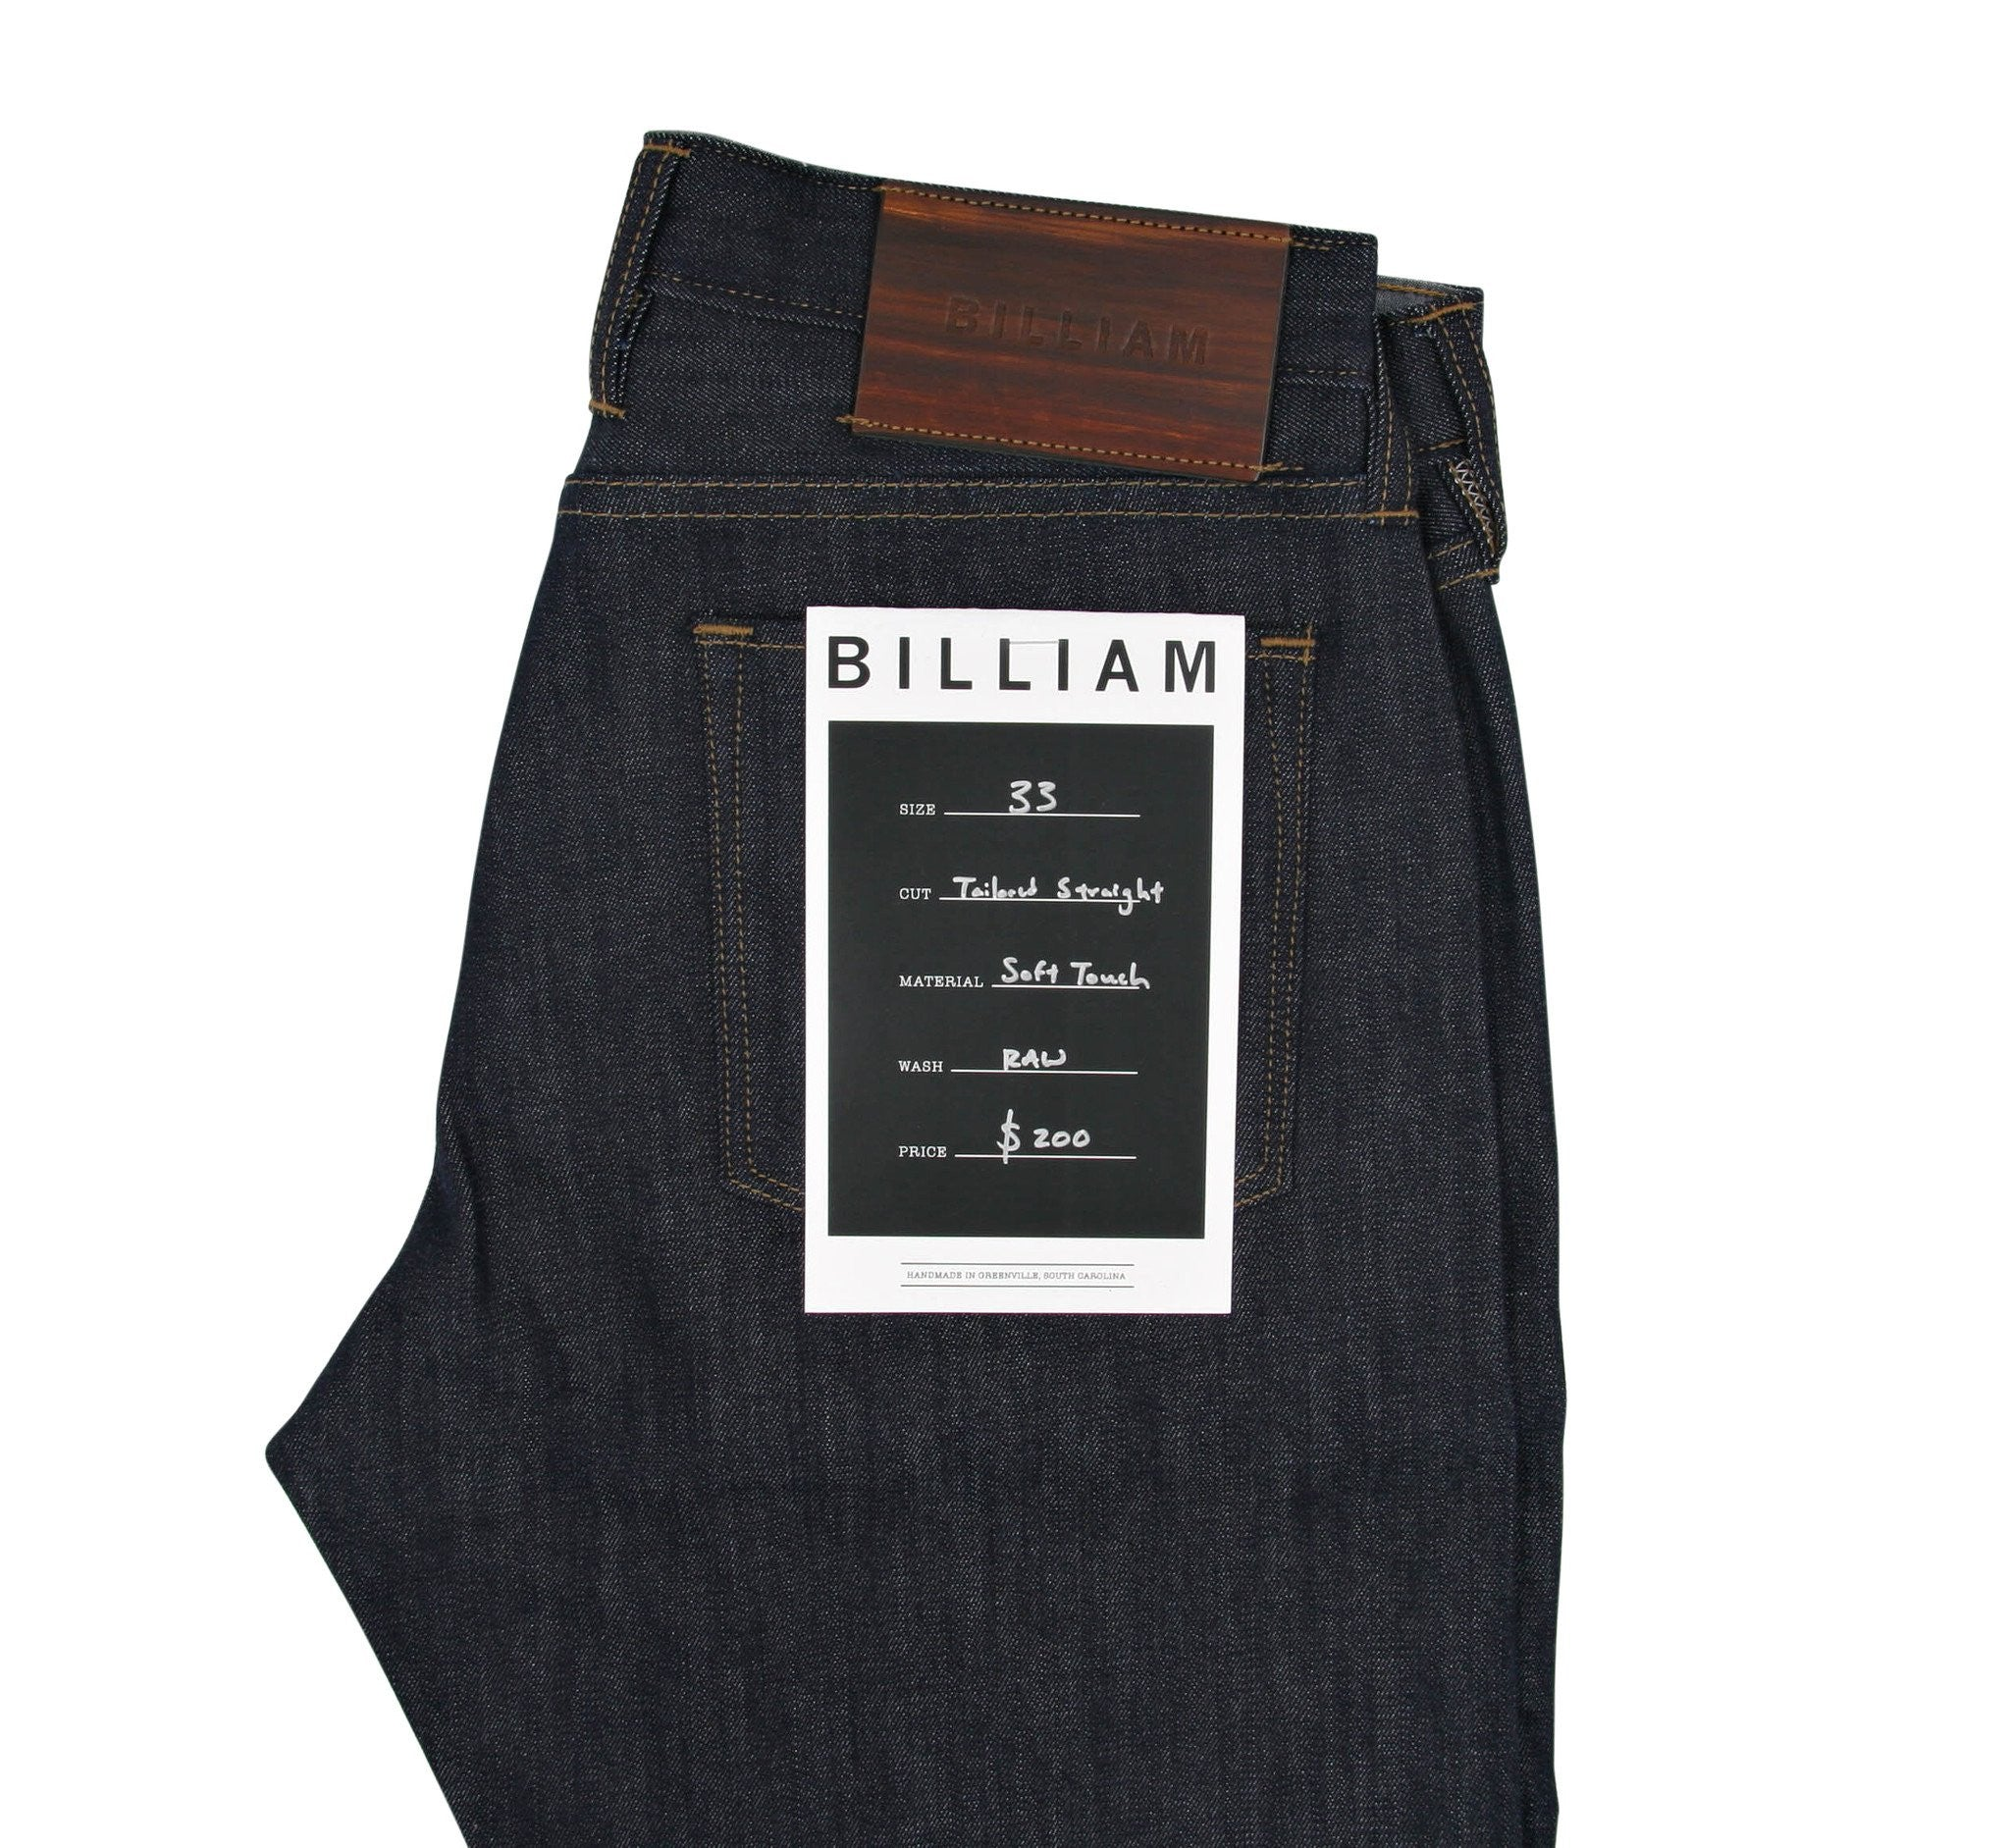 Billiam Tailored Straight Jean, Soft Touch Stretch Denim